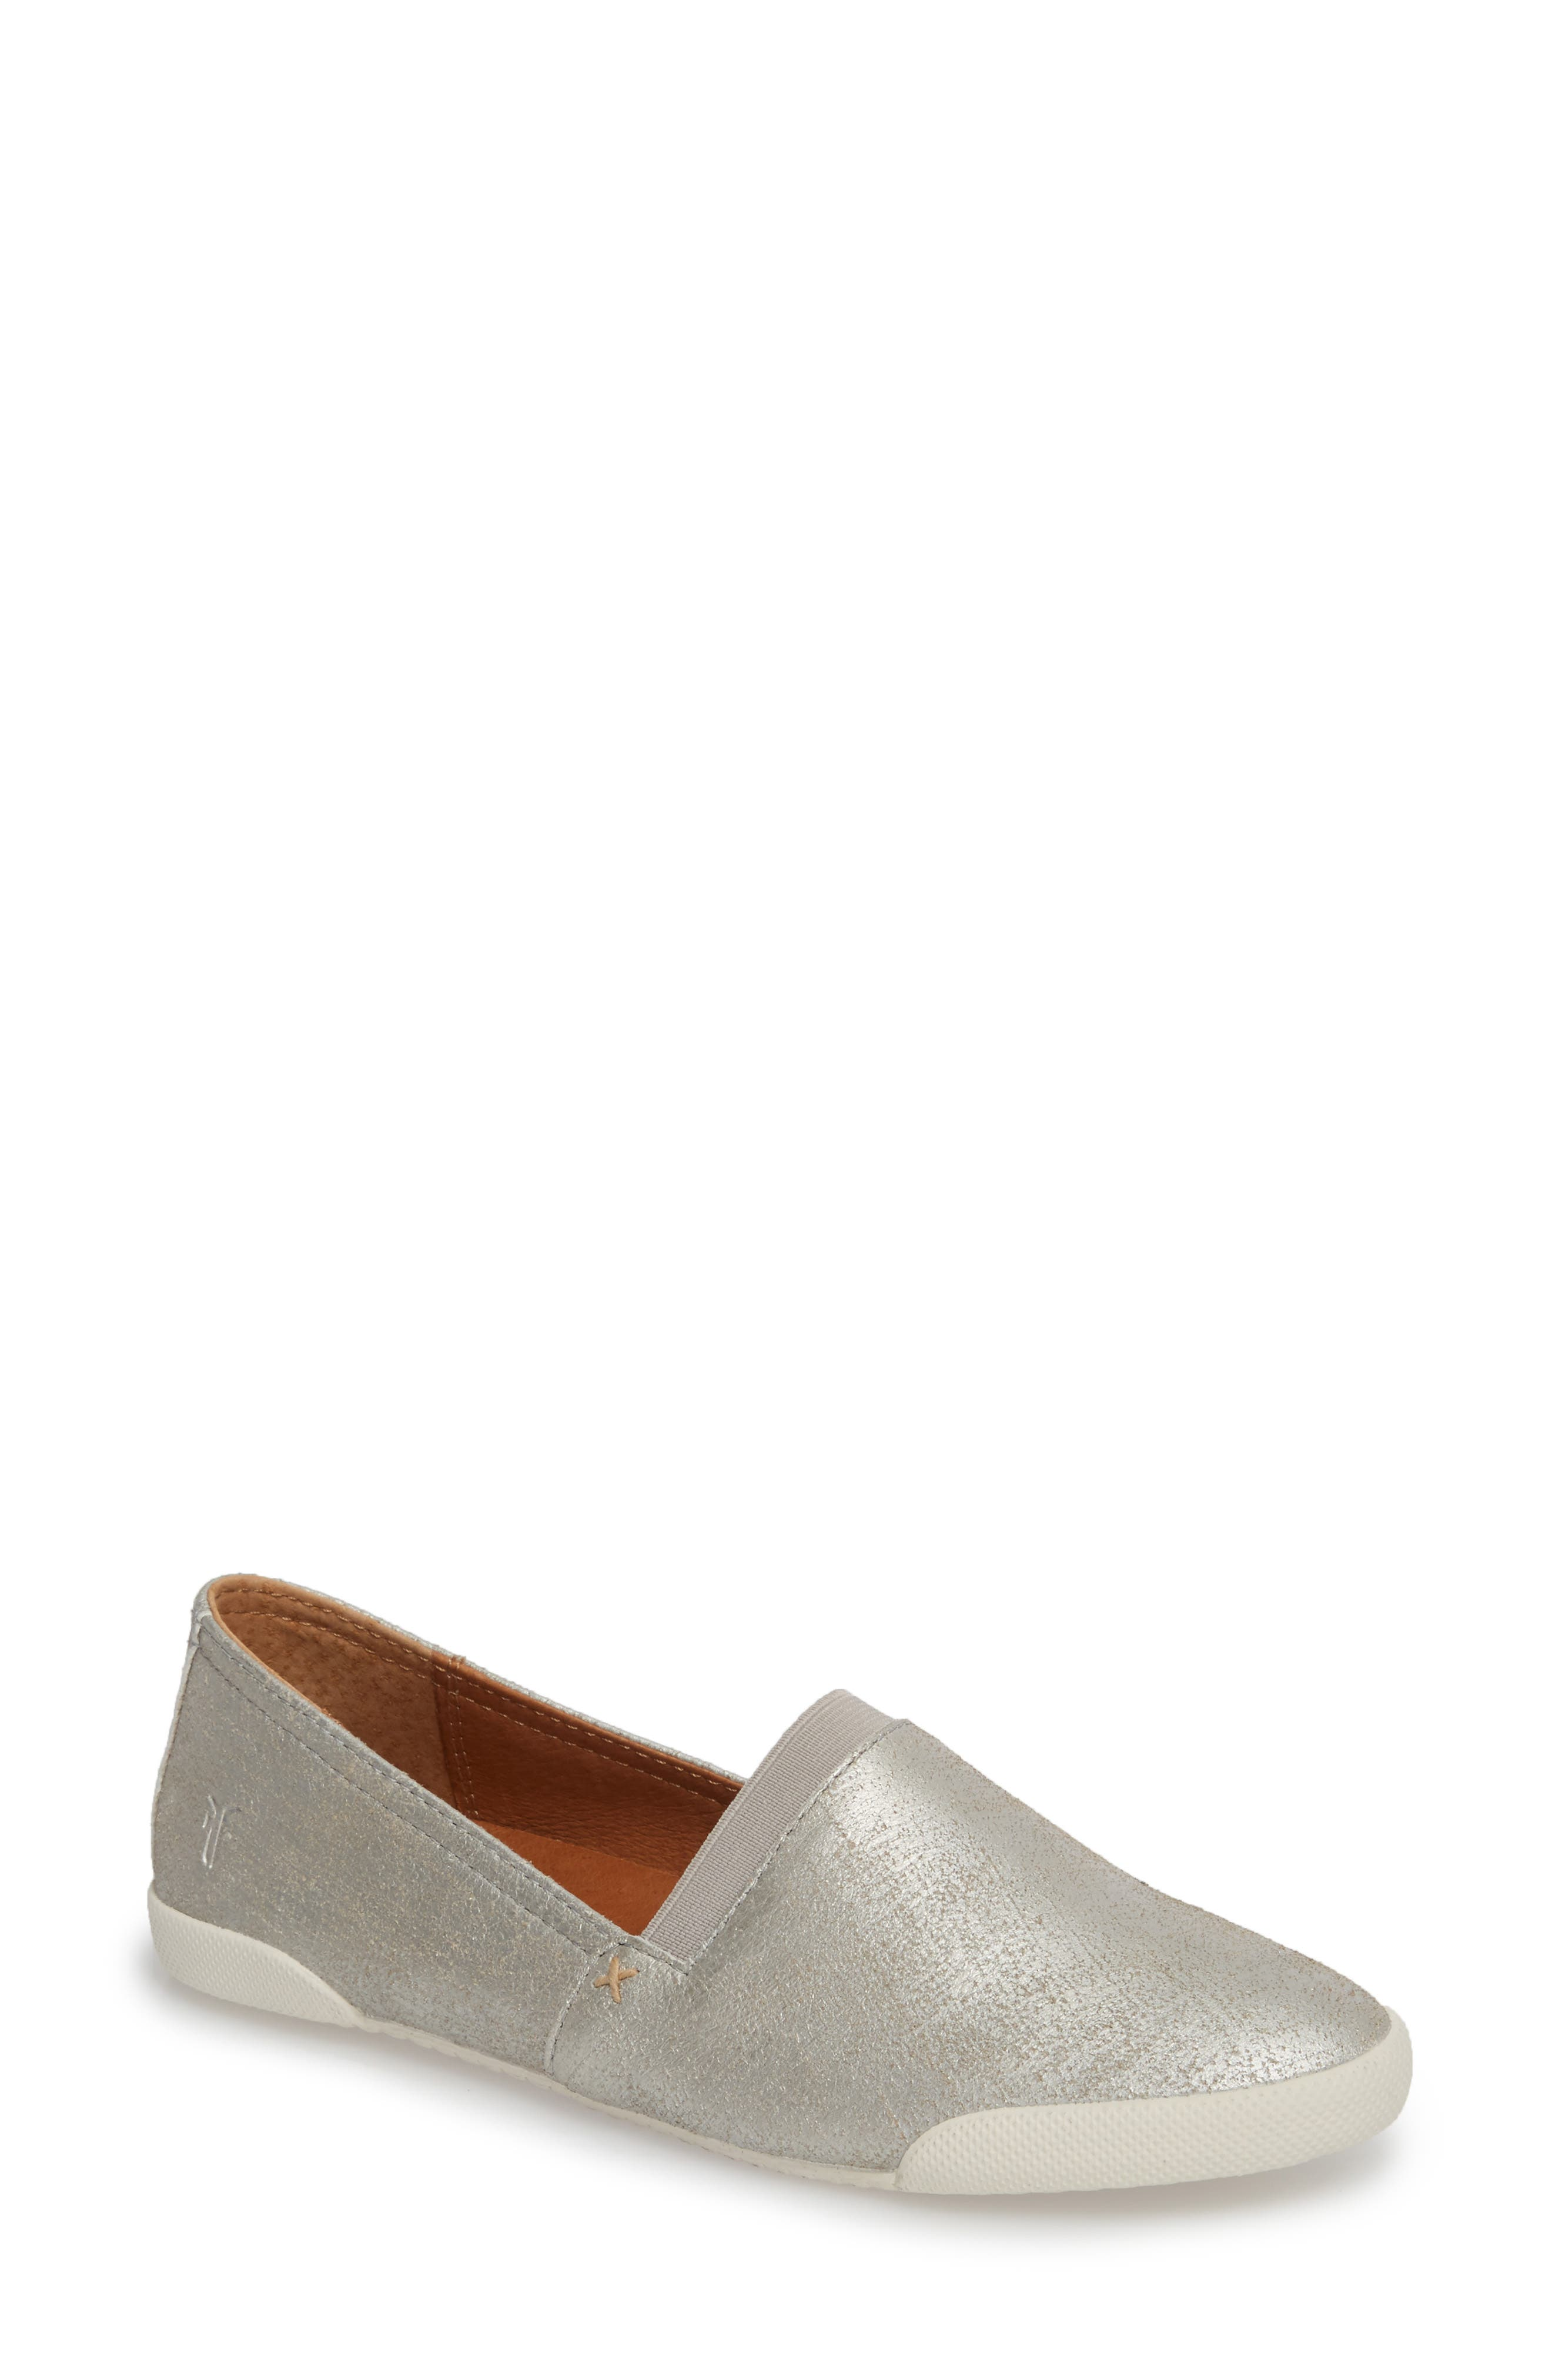 FRYE, 'Melanie' Slip-On, Main thumbnail 1, color, SILVER